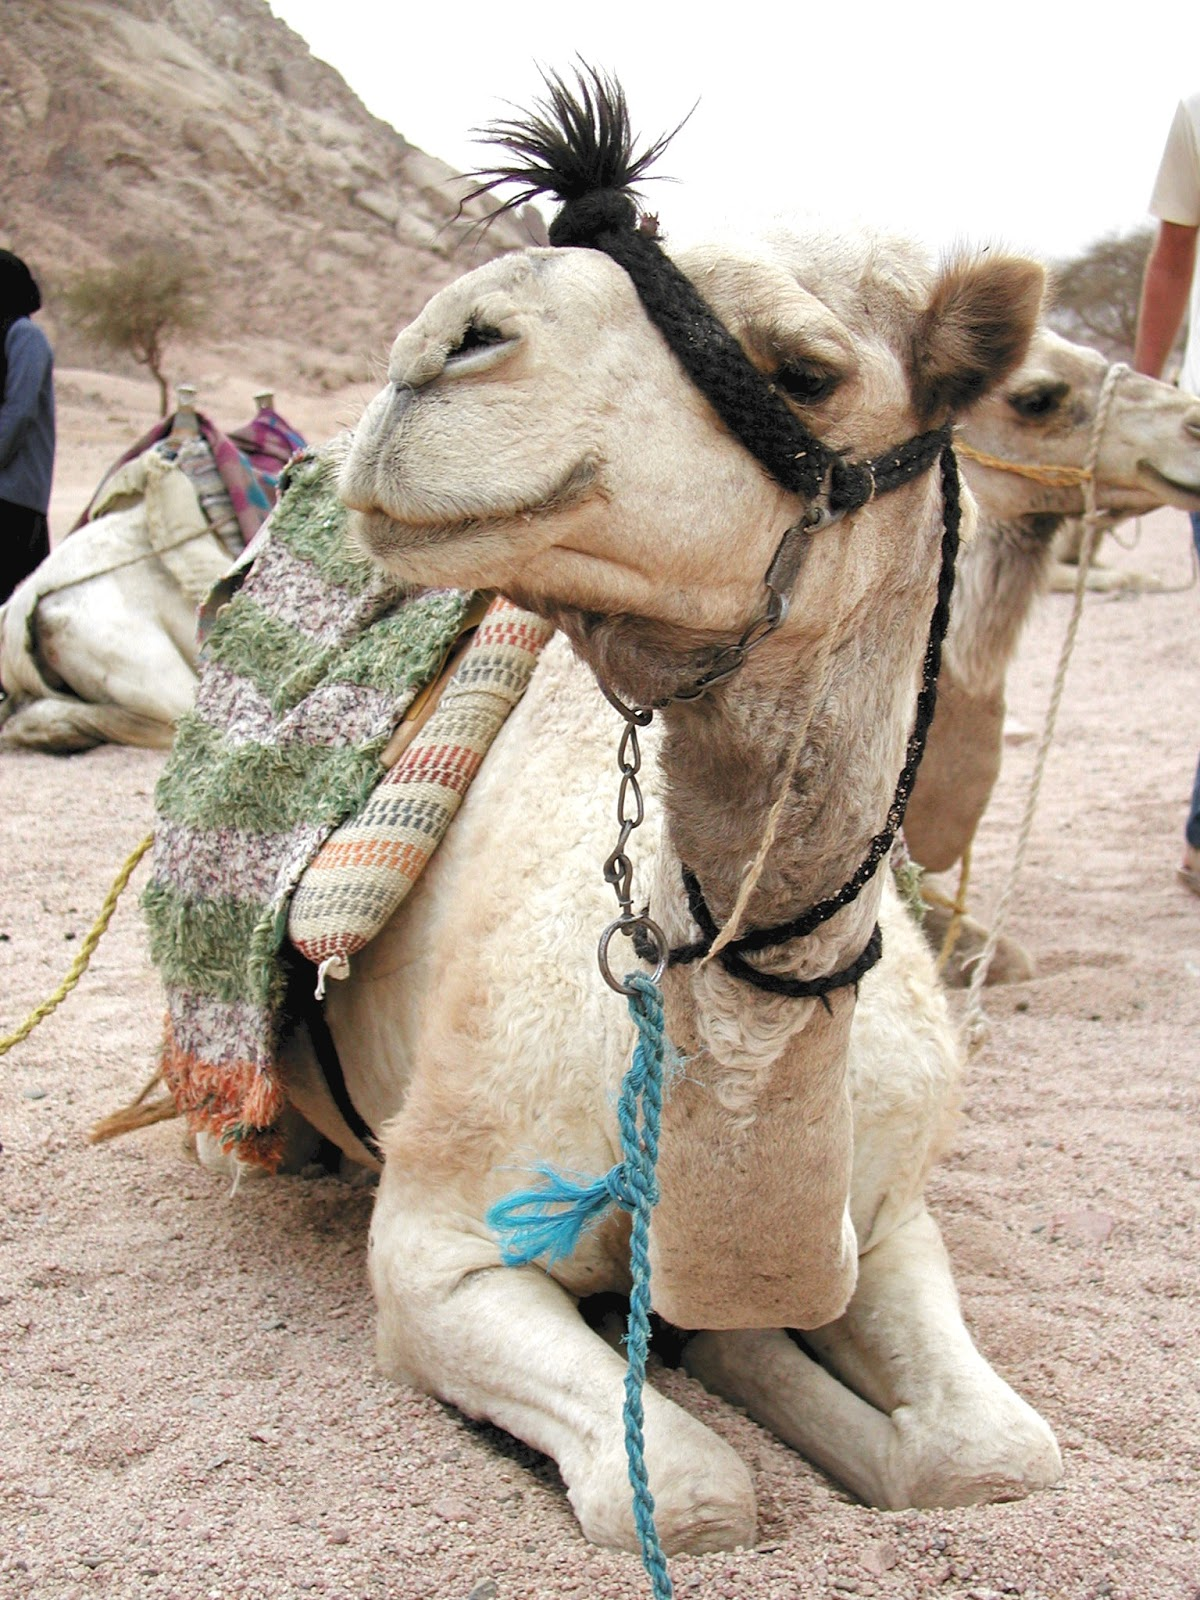 Picture of camel up close.